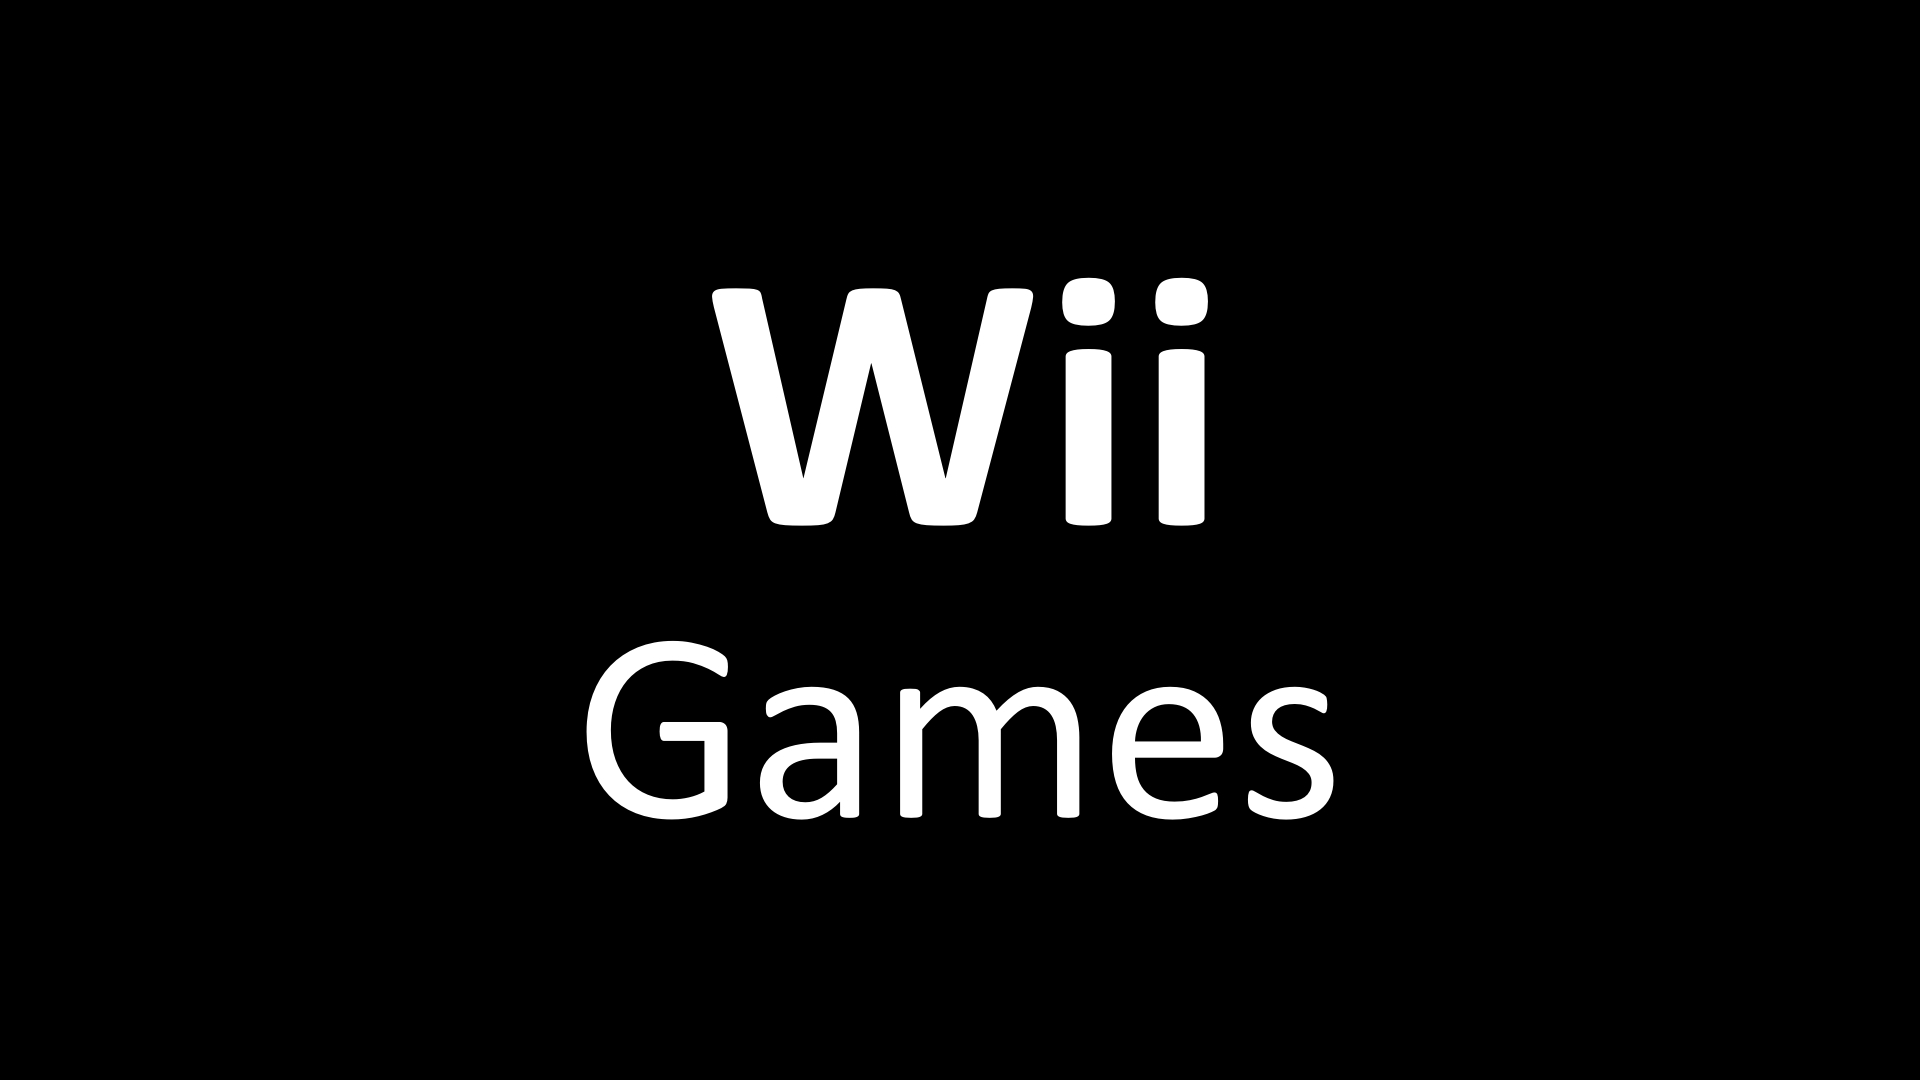 The Best Wii Games That Are Still Super Popular